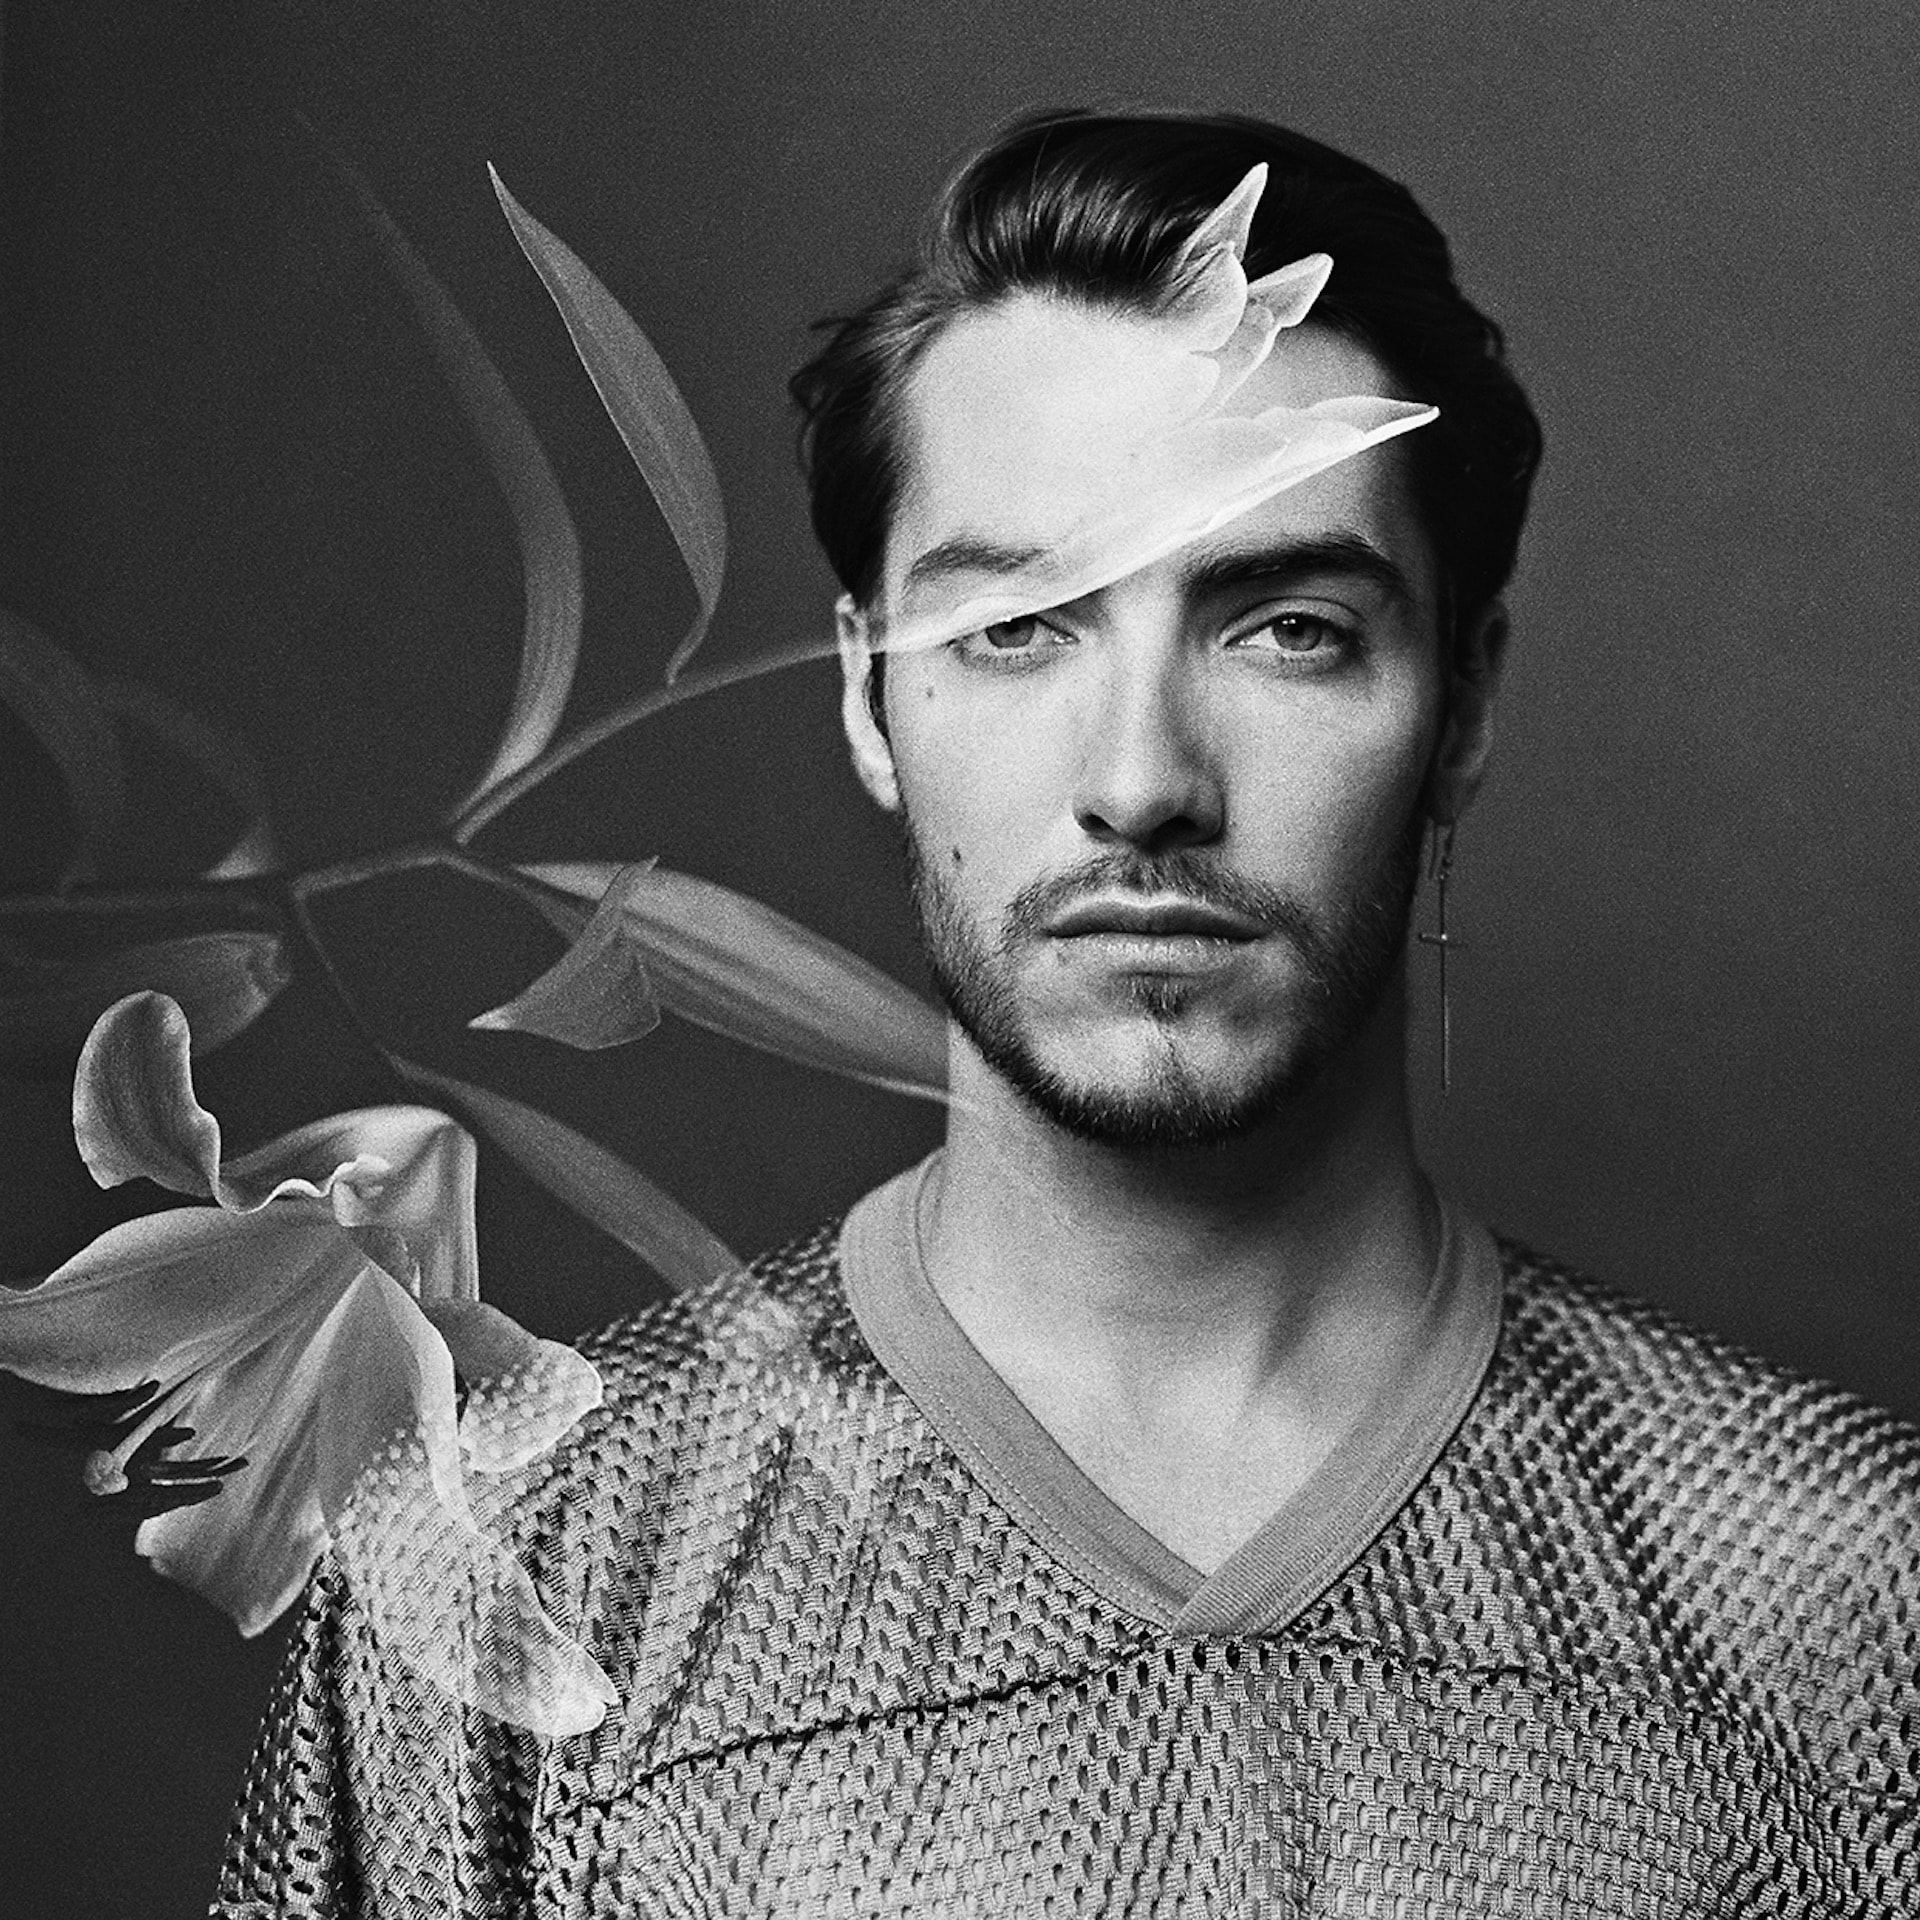 David Rosetzky, 'Kazim with Lilies', 2017, from 'David Rosetzky: Double Exposures' (M.33, 2021)